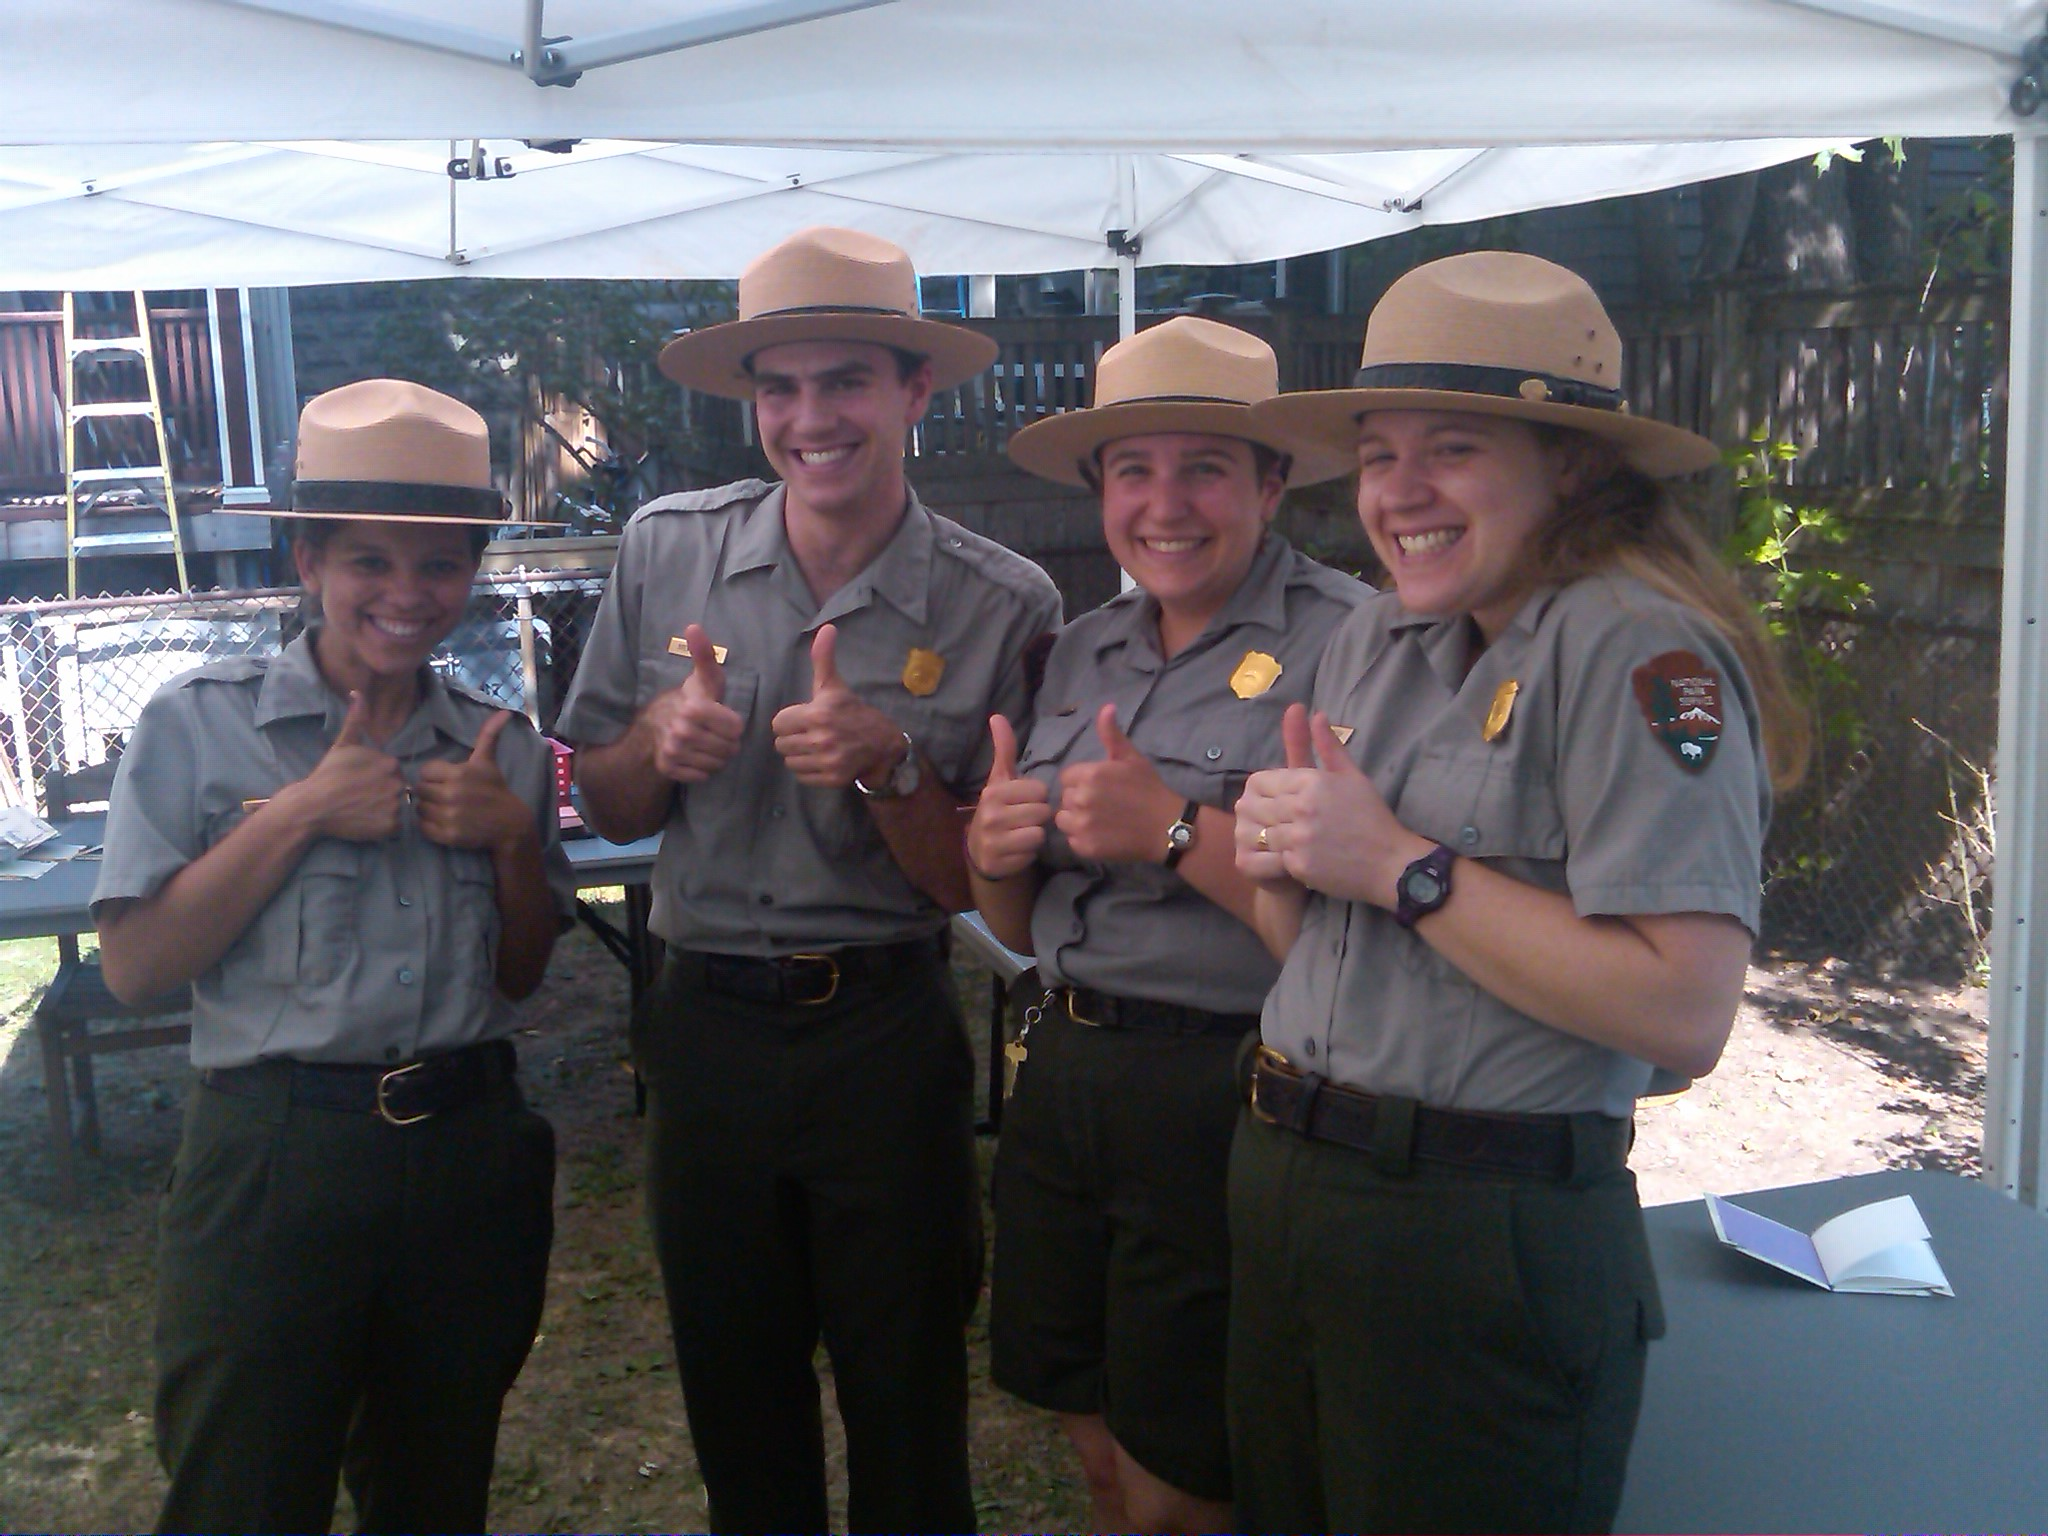 Rangers give Founder's Day Two Thumbs up!